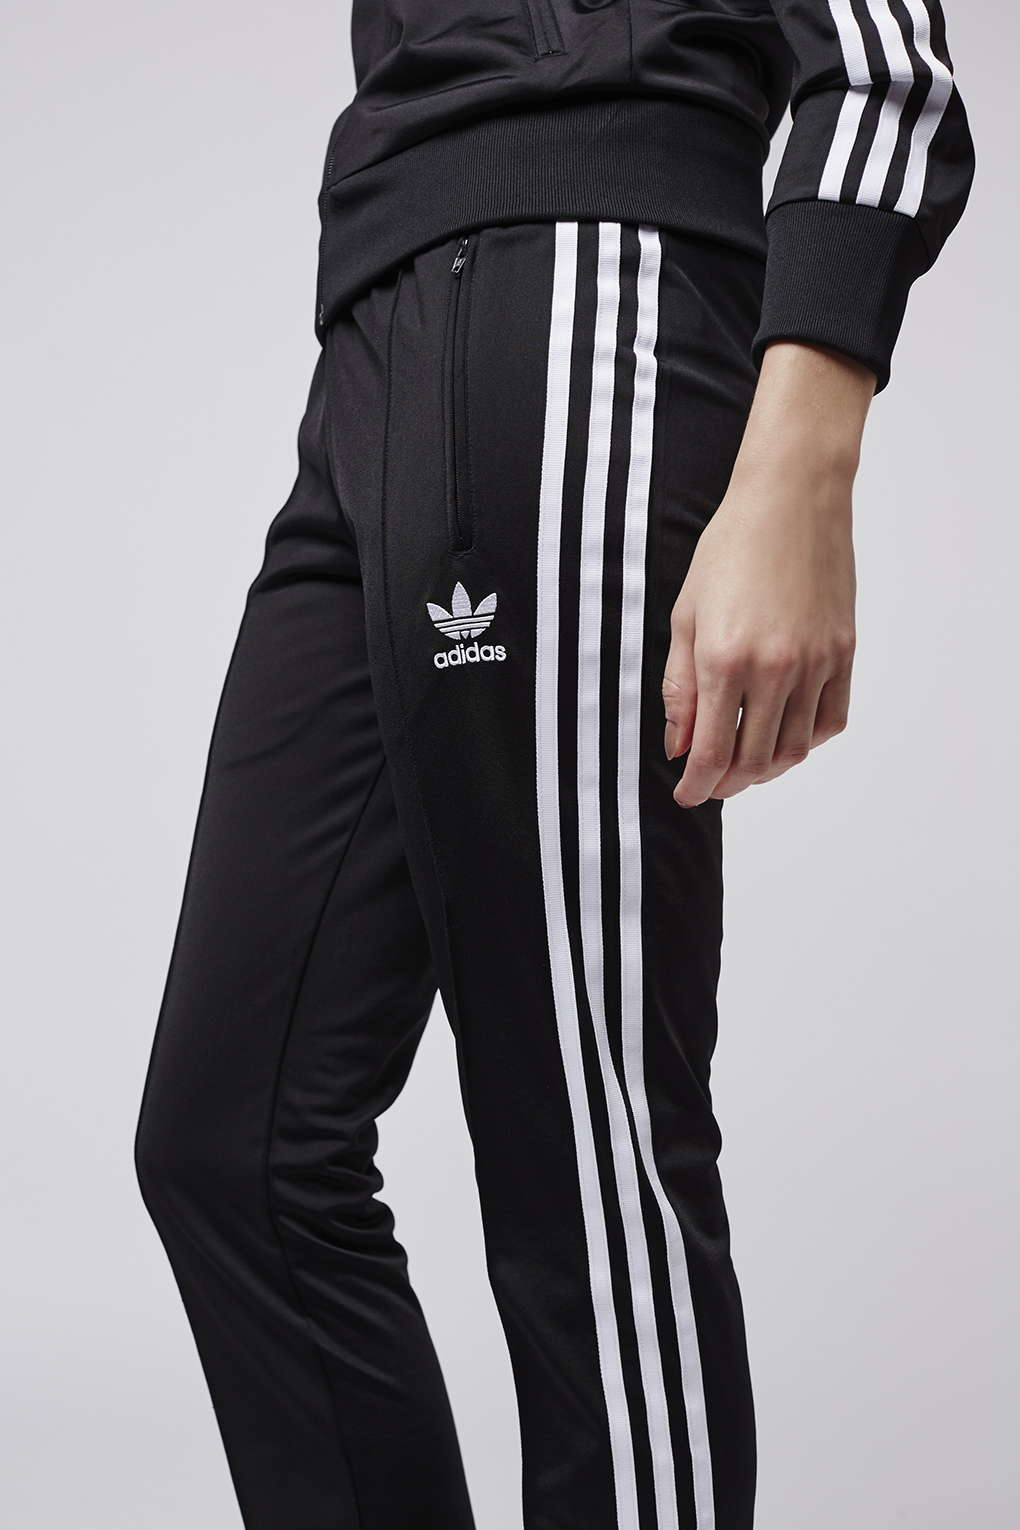 94af1c36 TOPSHOP Firebird Track Pant Trousers By Adidas Originals in Black - Lyst